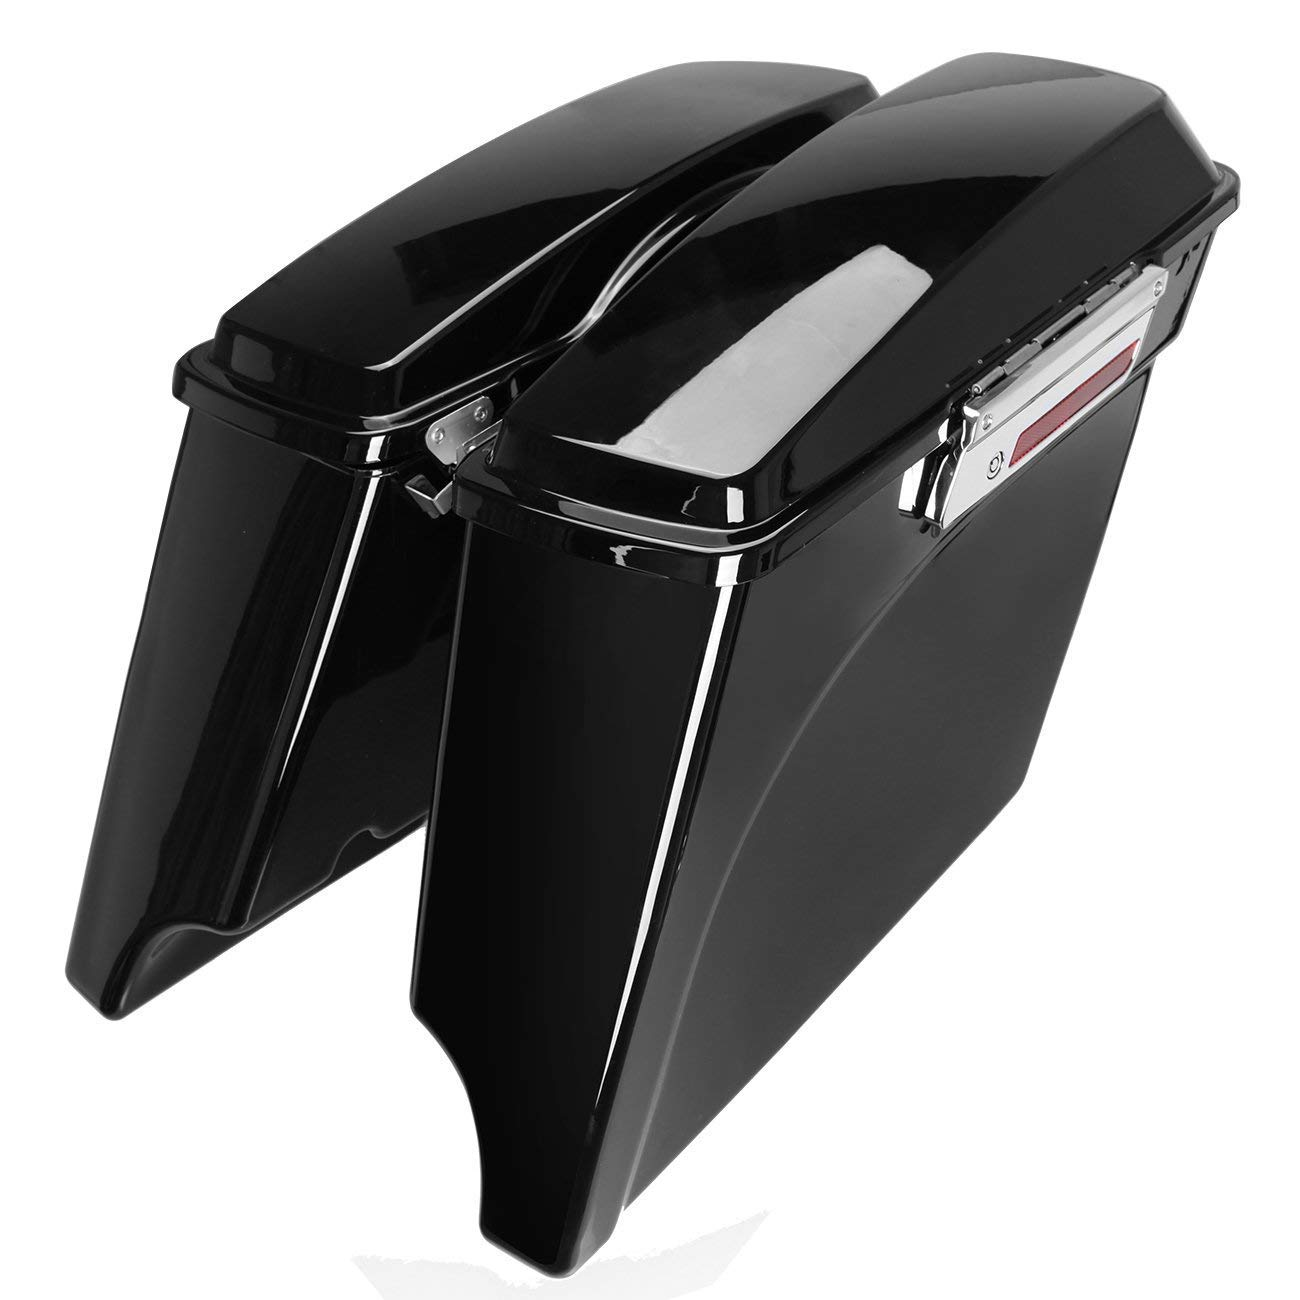 AMB 4'' Complete Stretched Extended Painted Saddlebags for Harley Touring Road Glide, Road King, Ultra, Street Glide, Electra Glide 1993-2013